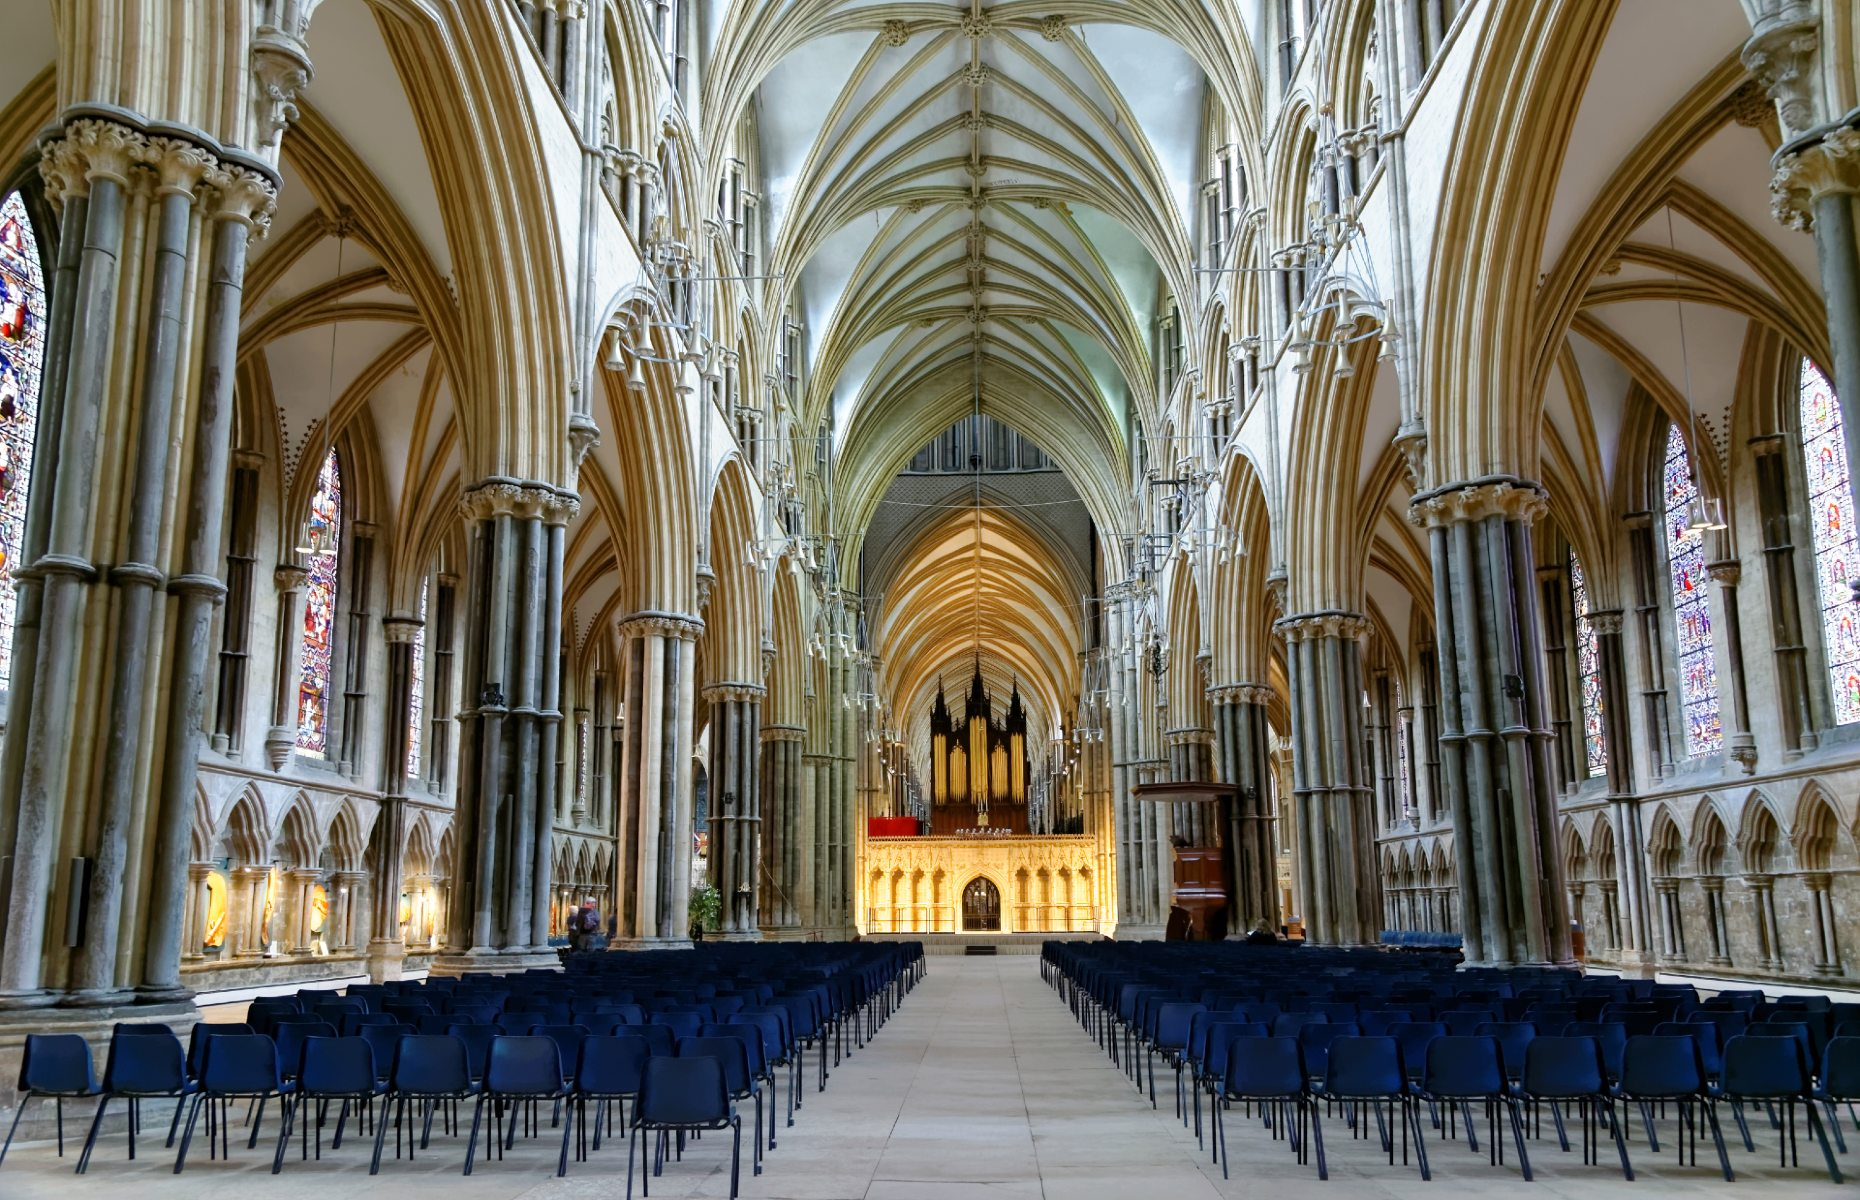 Lincoln Cathedral inside (Image: Angelina Dimitrova/Shutterstock)